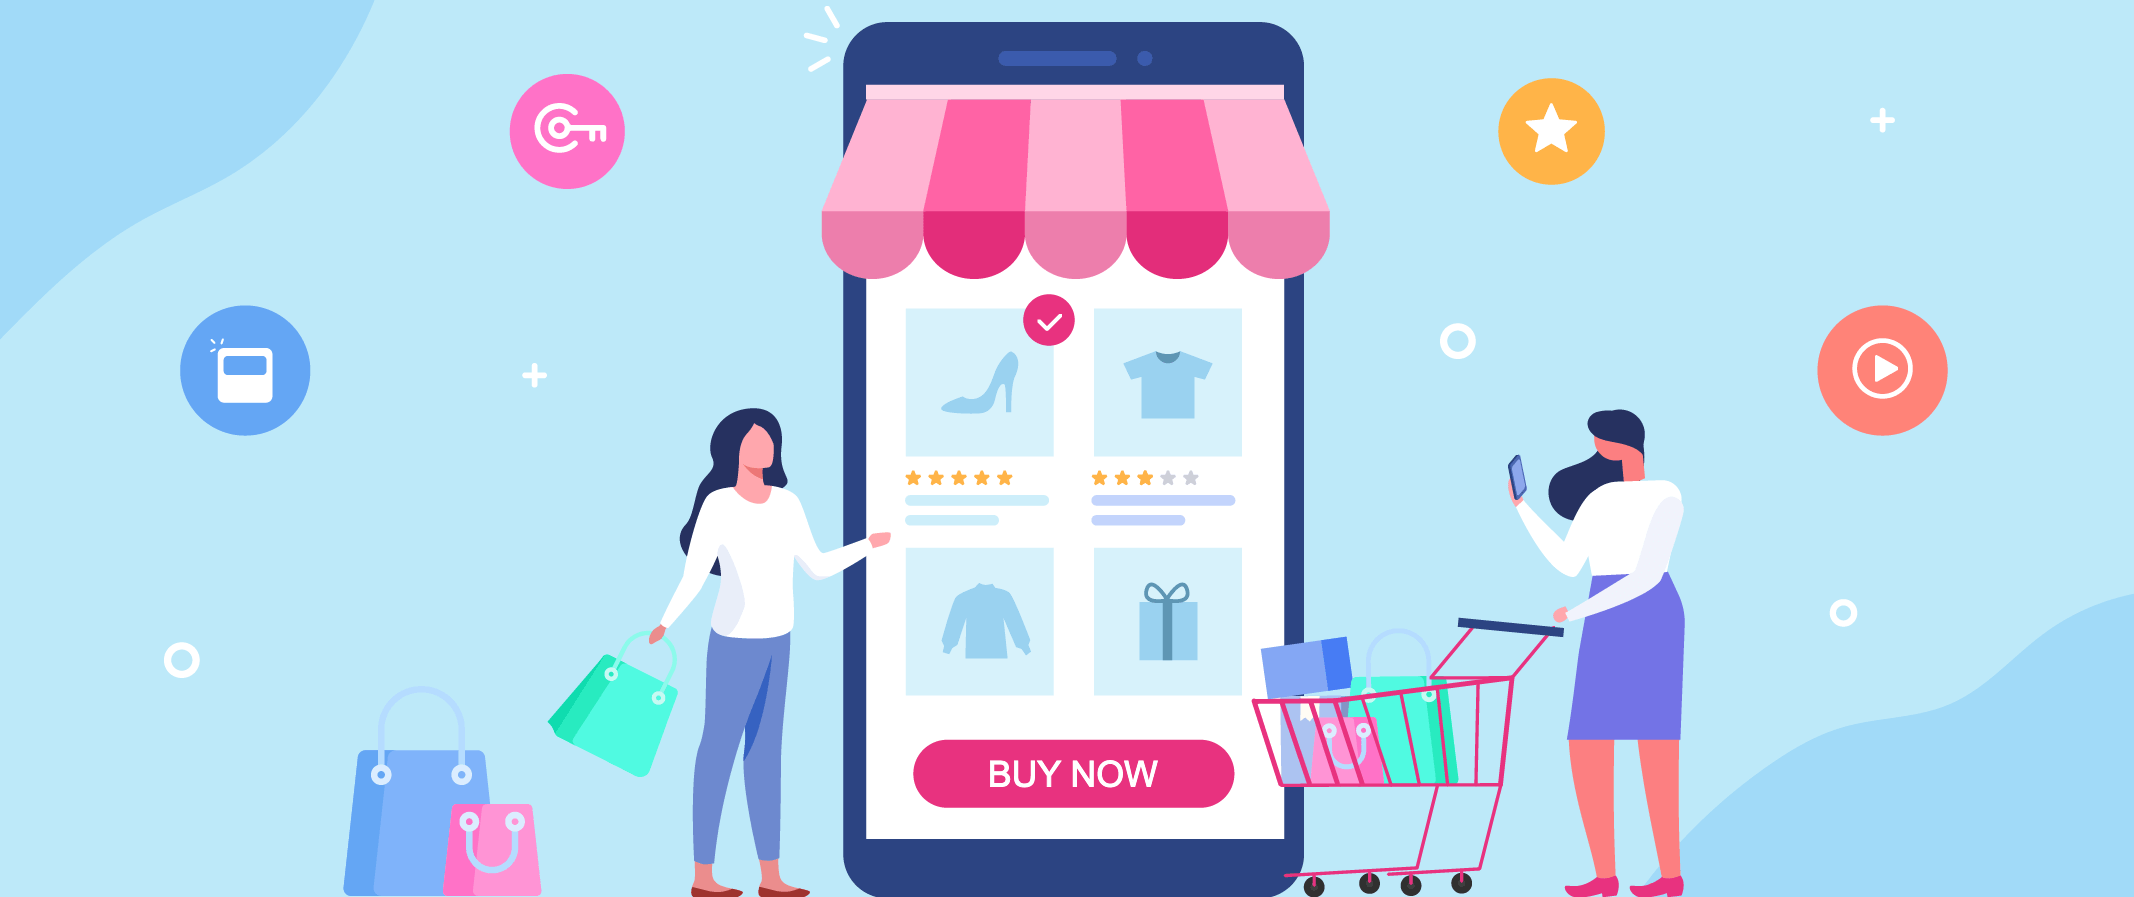 App Store Optimization Tips for Ecommerce Apps to Boost Organic User Acquisition